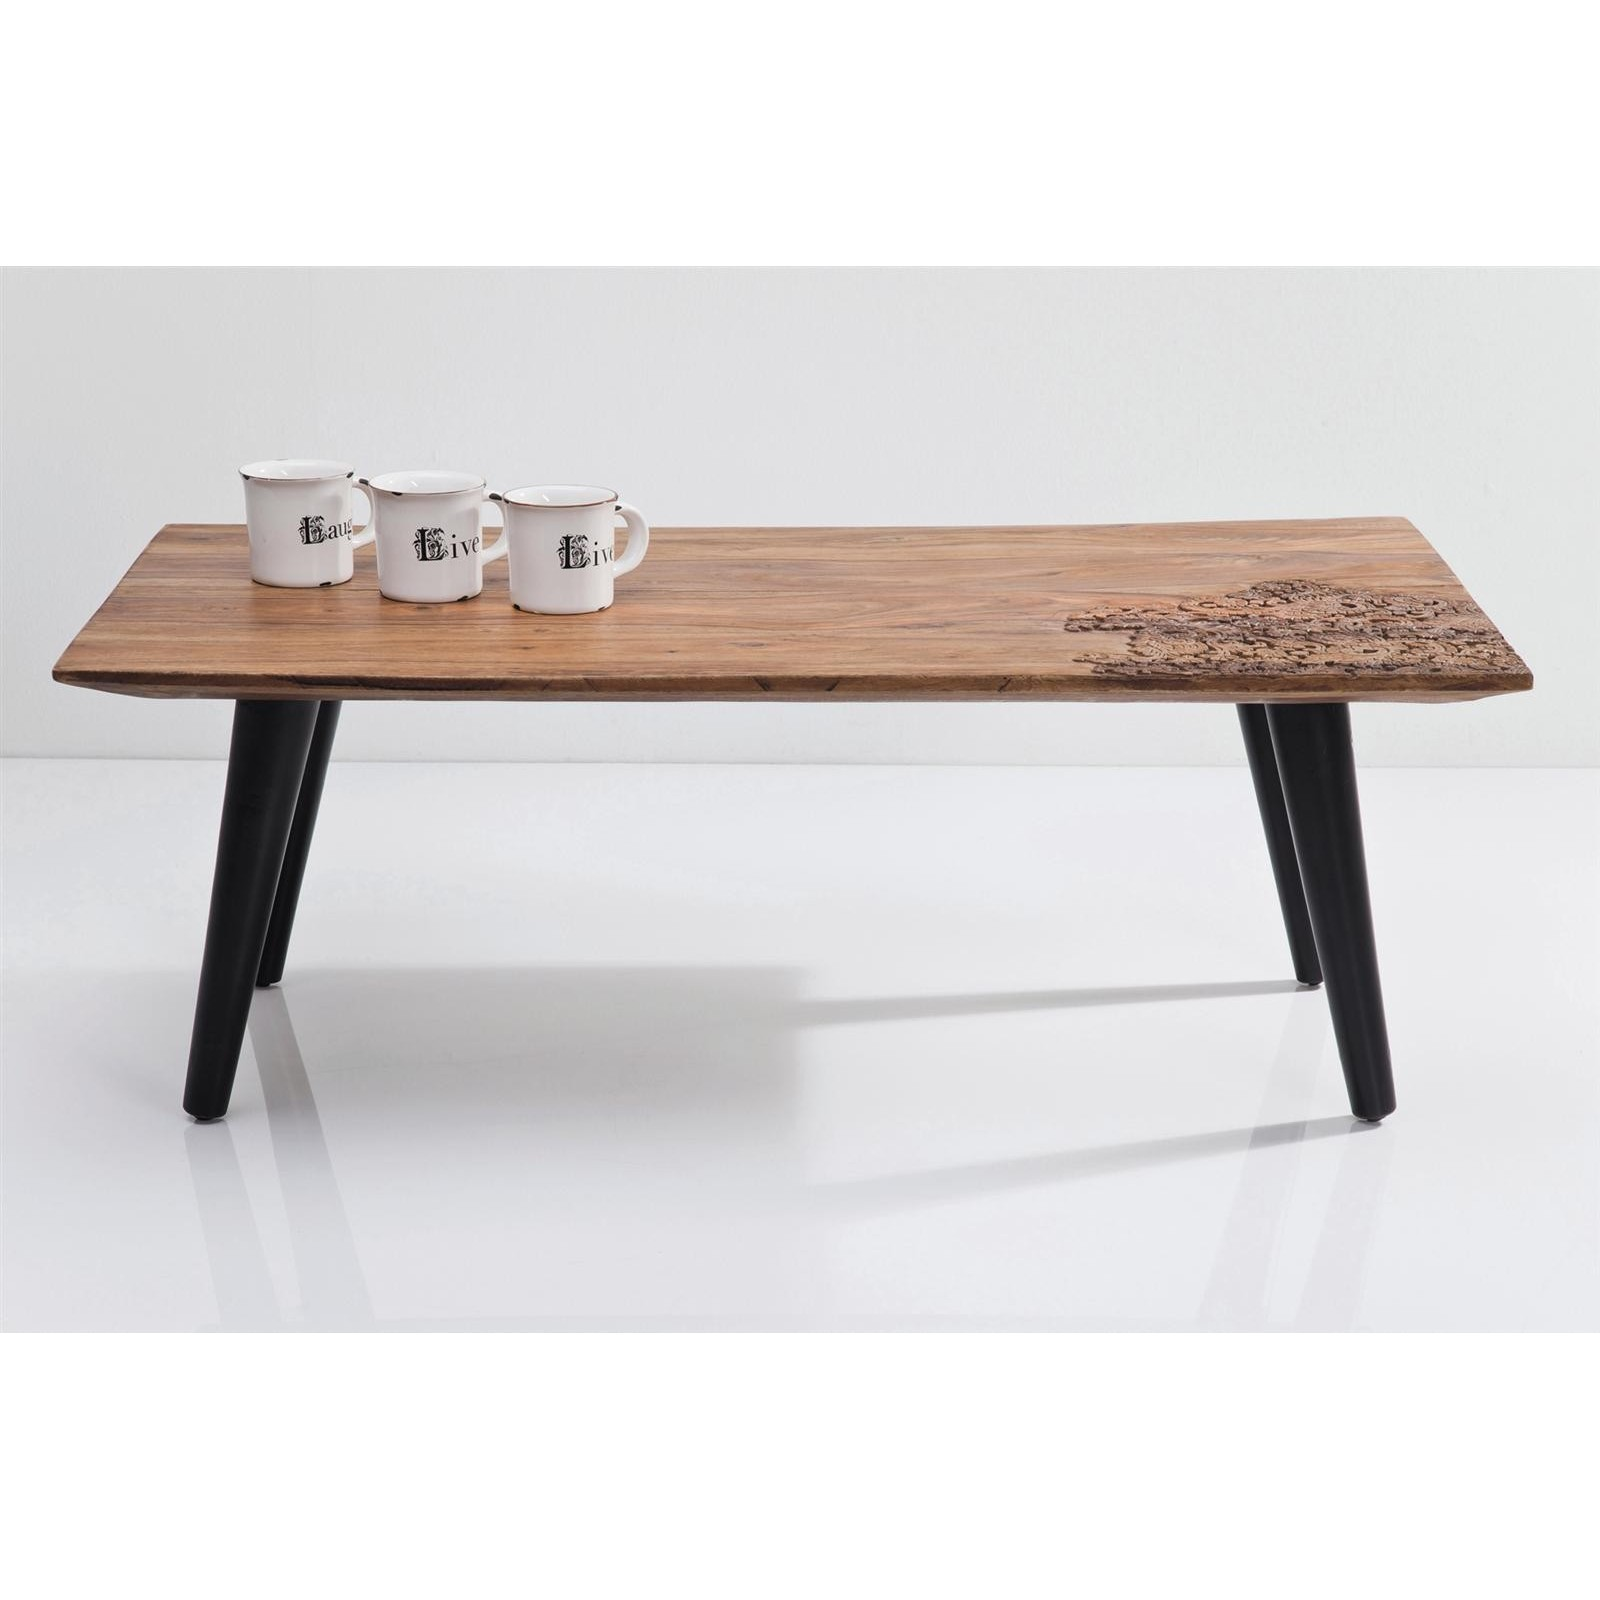 table basse ethnique en bois - rodeo - kare design